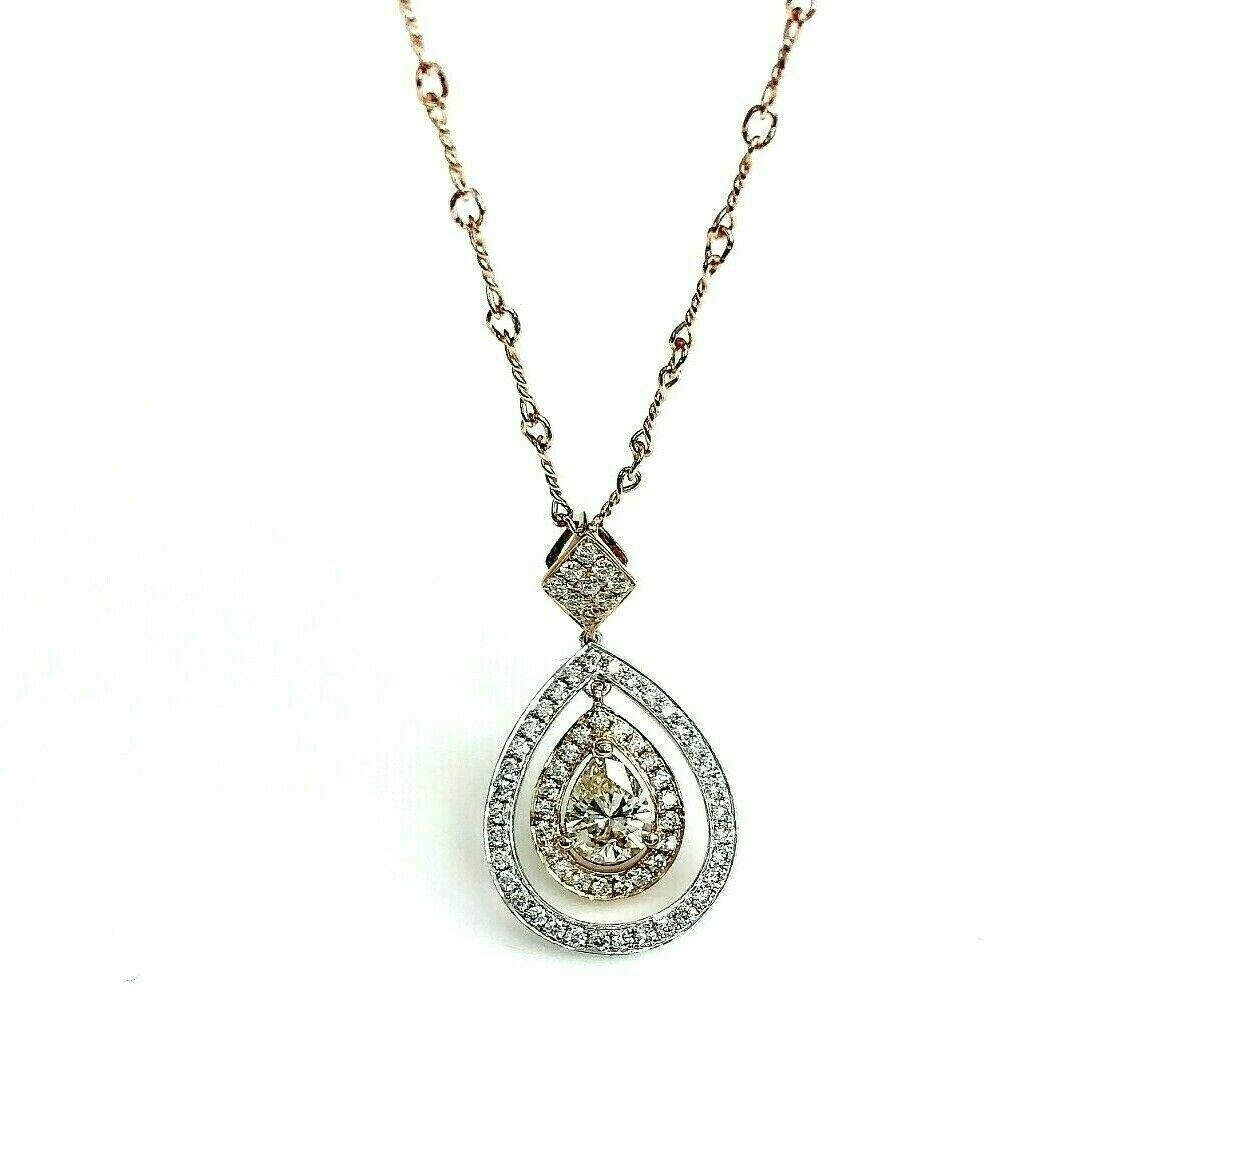 1.18 Carats t.w. Pear and Round Diamond Halo Pendant w Chain 18K Pendant